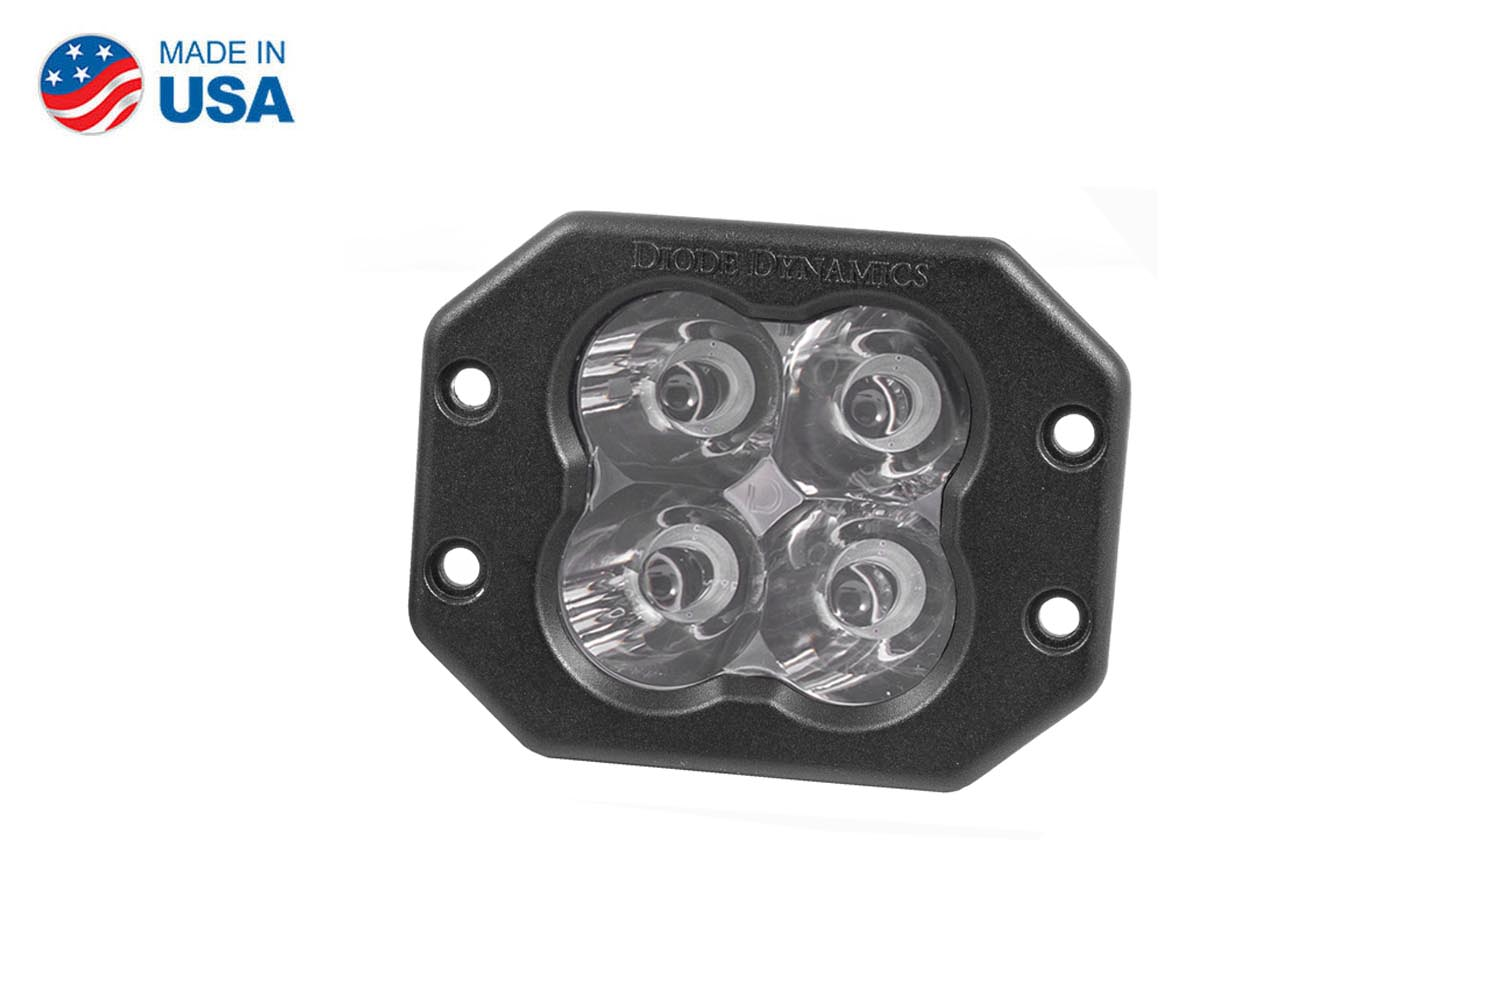 Diode Dynamics Worklight SS3 Pro White Spot Flush (single)